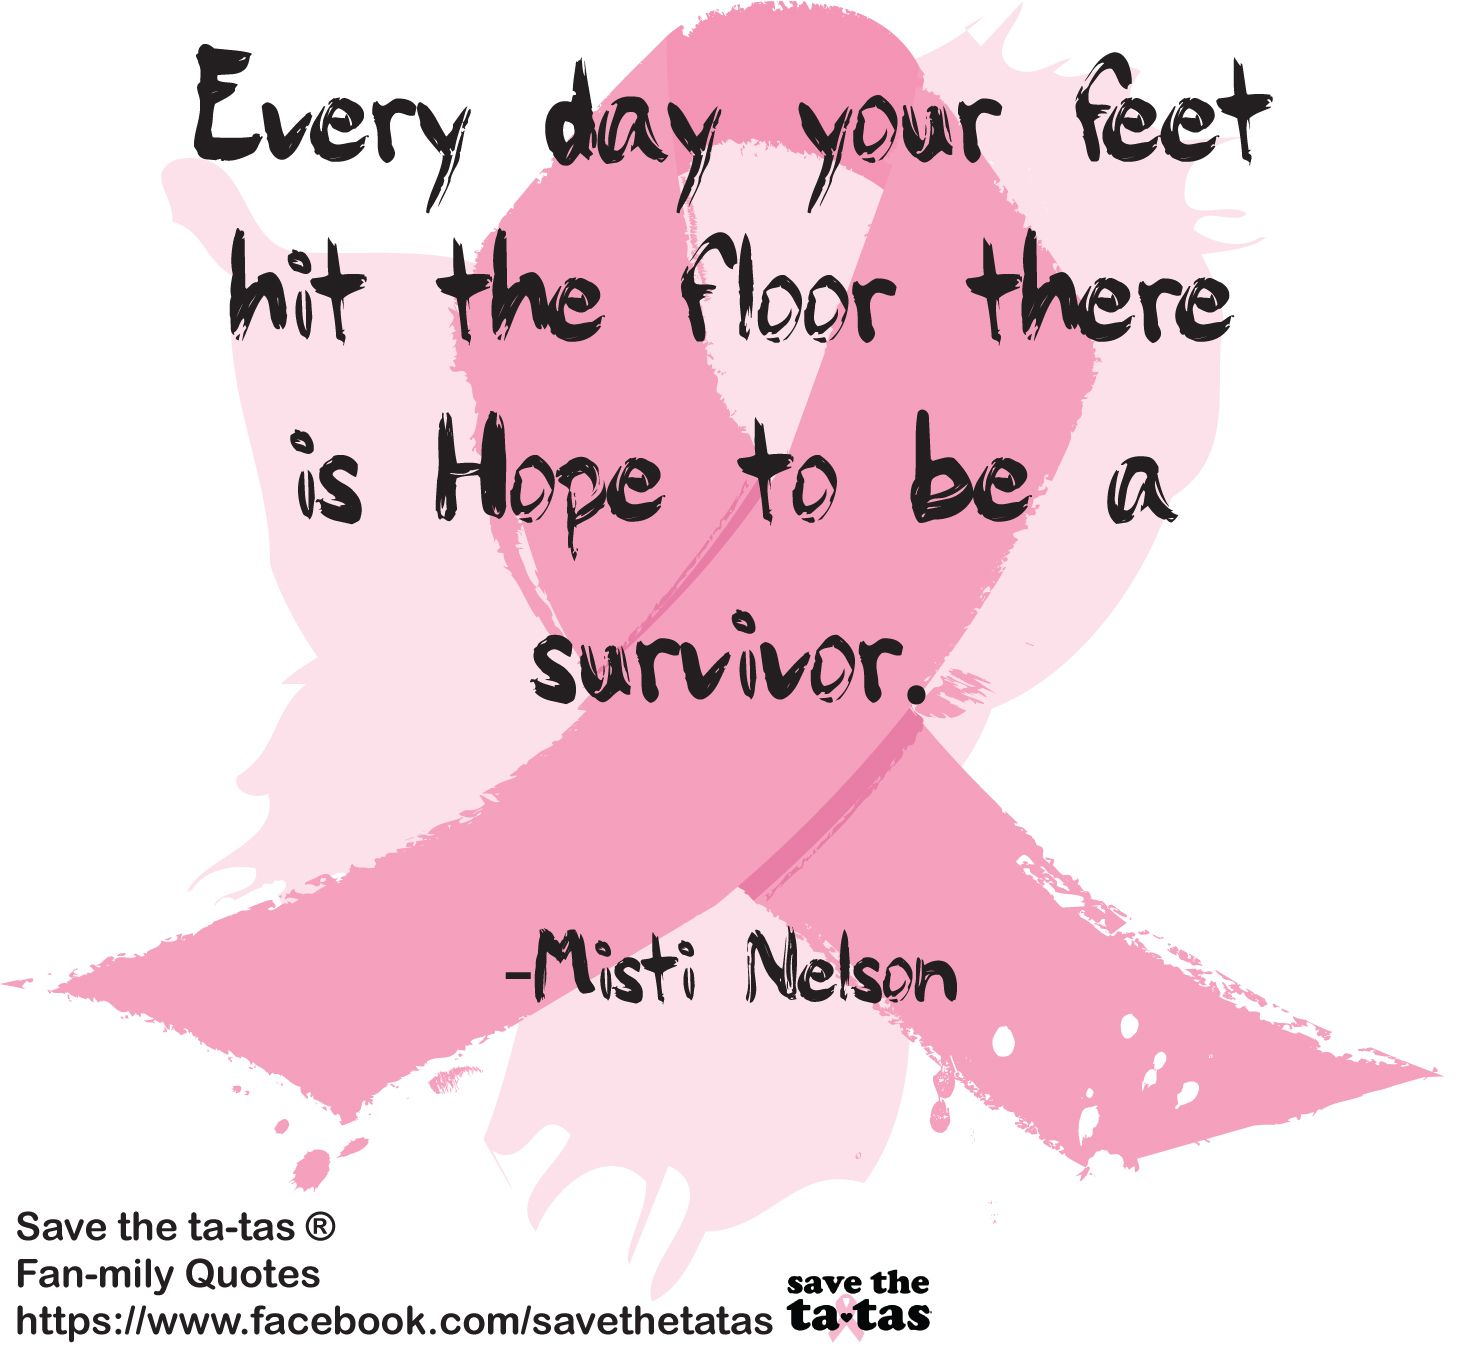 Cancer Survivor Quotes Save The Tatas Fanmily Quotes  Pretty In Pink Breast Cancer